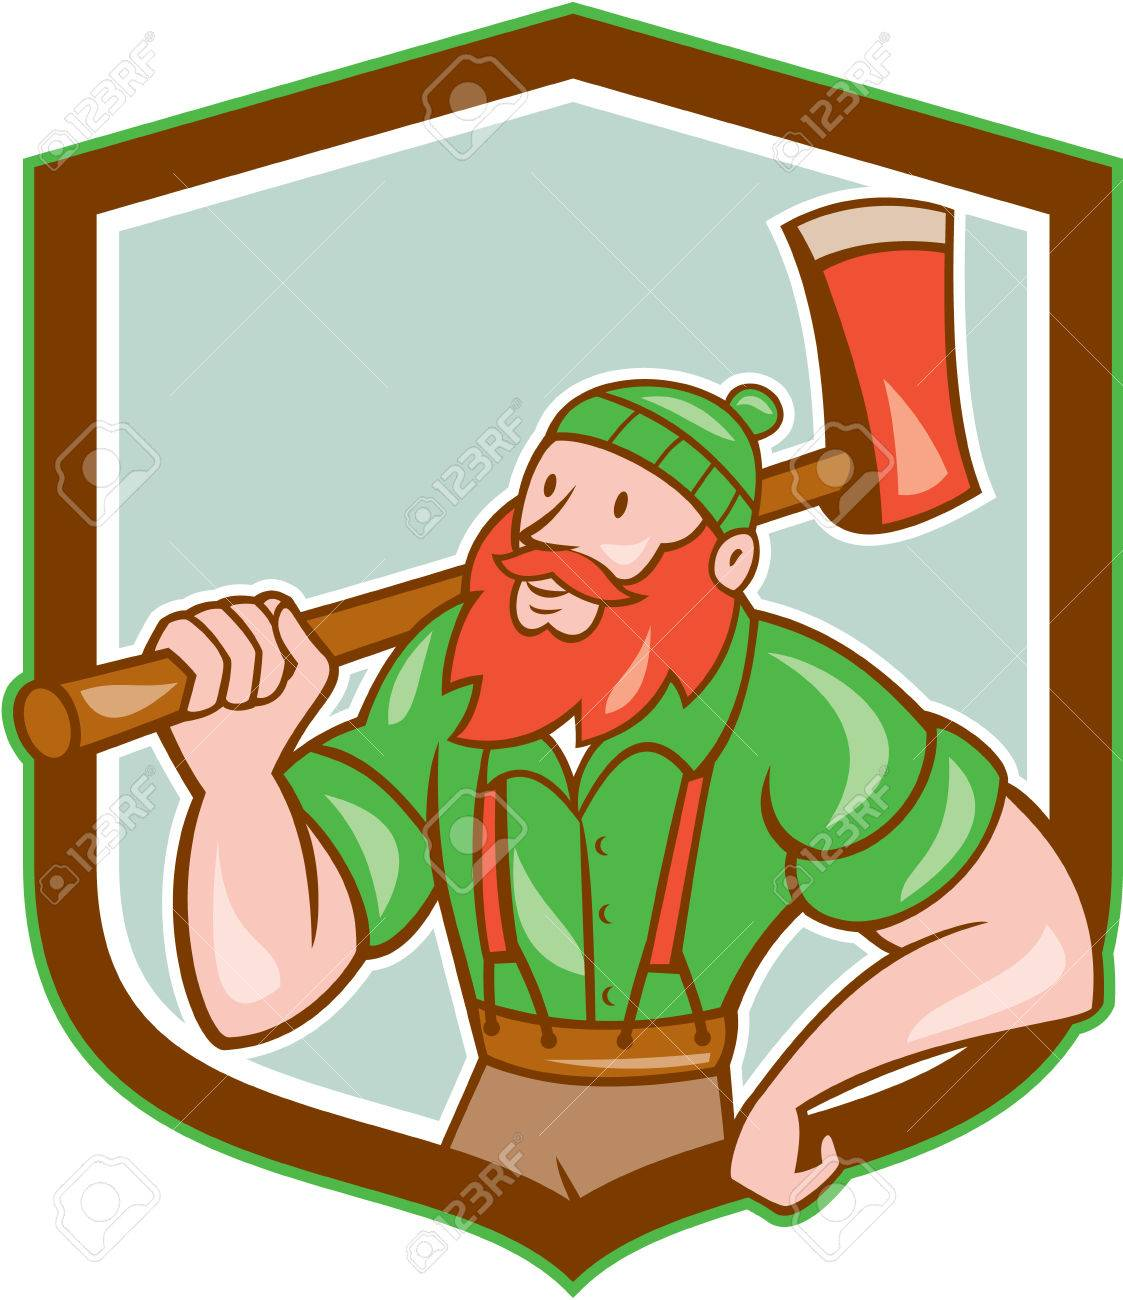 hight resolution of illustration of a paul bunyan an american lumberjack sawyer forest holding an axe on shoulder looking